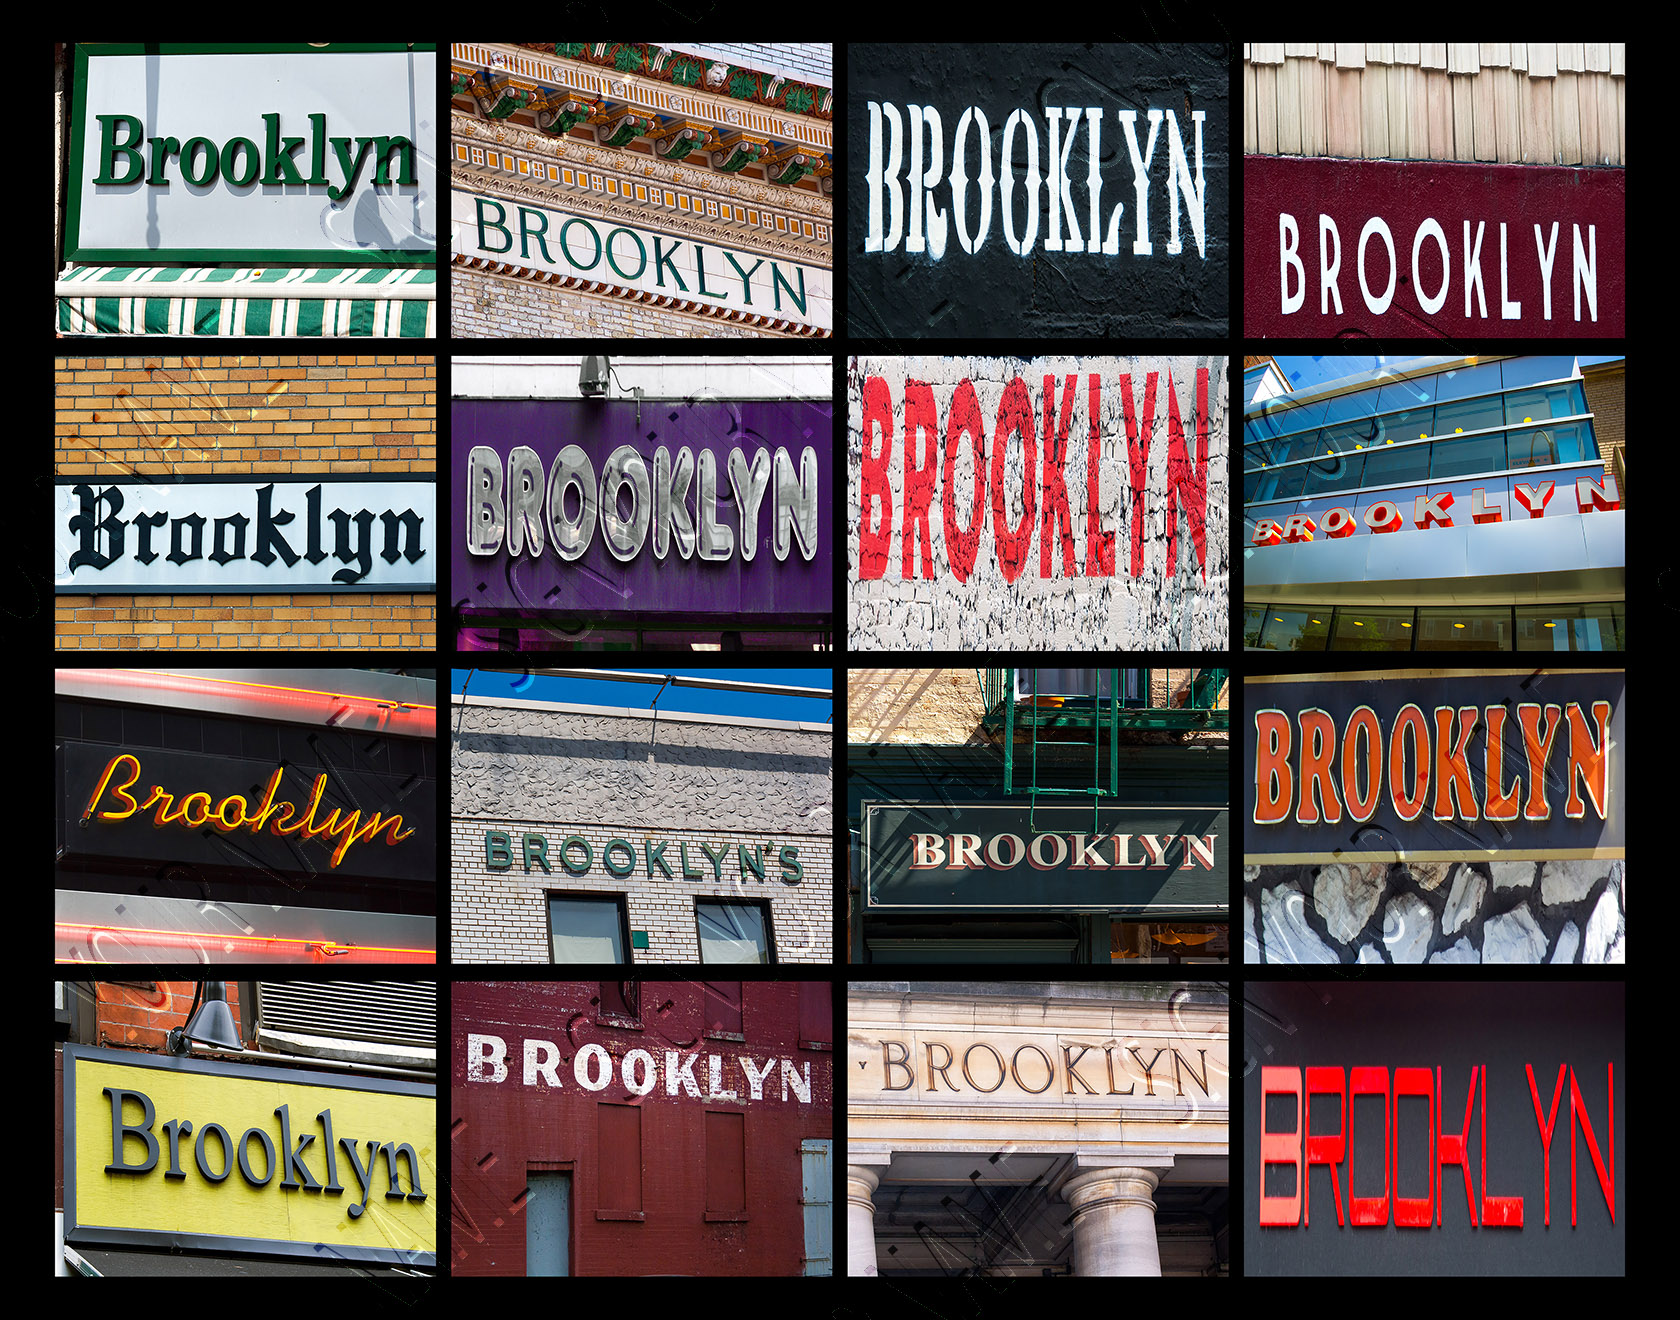 https://www.etsy.com/listing/250837172/personalized-poster-featuring-brooklyn?ref=shop_home_active_1